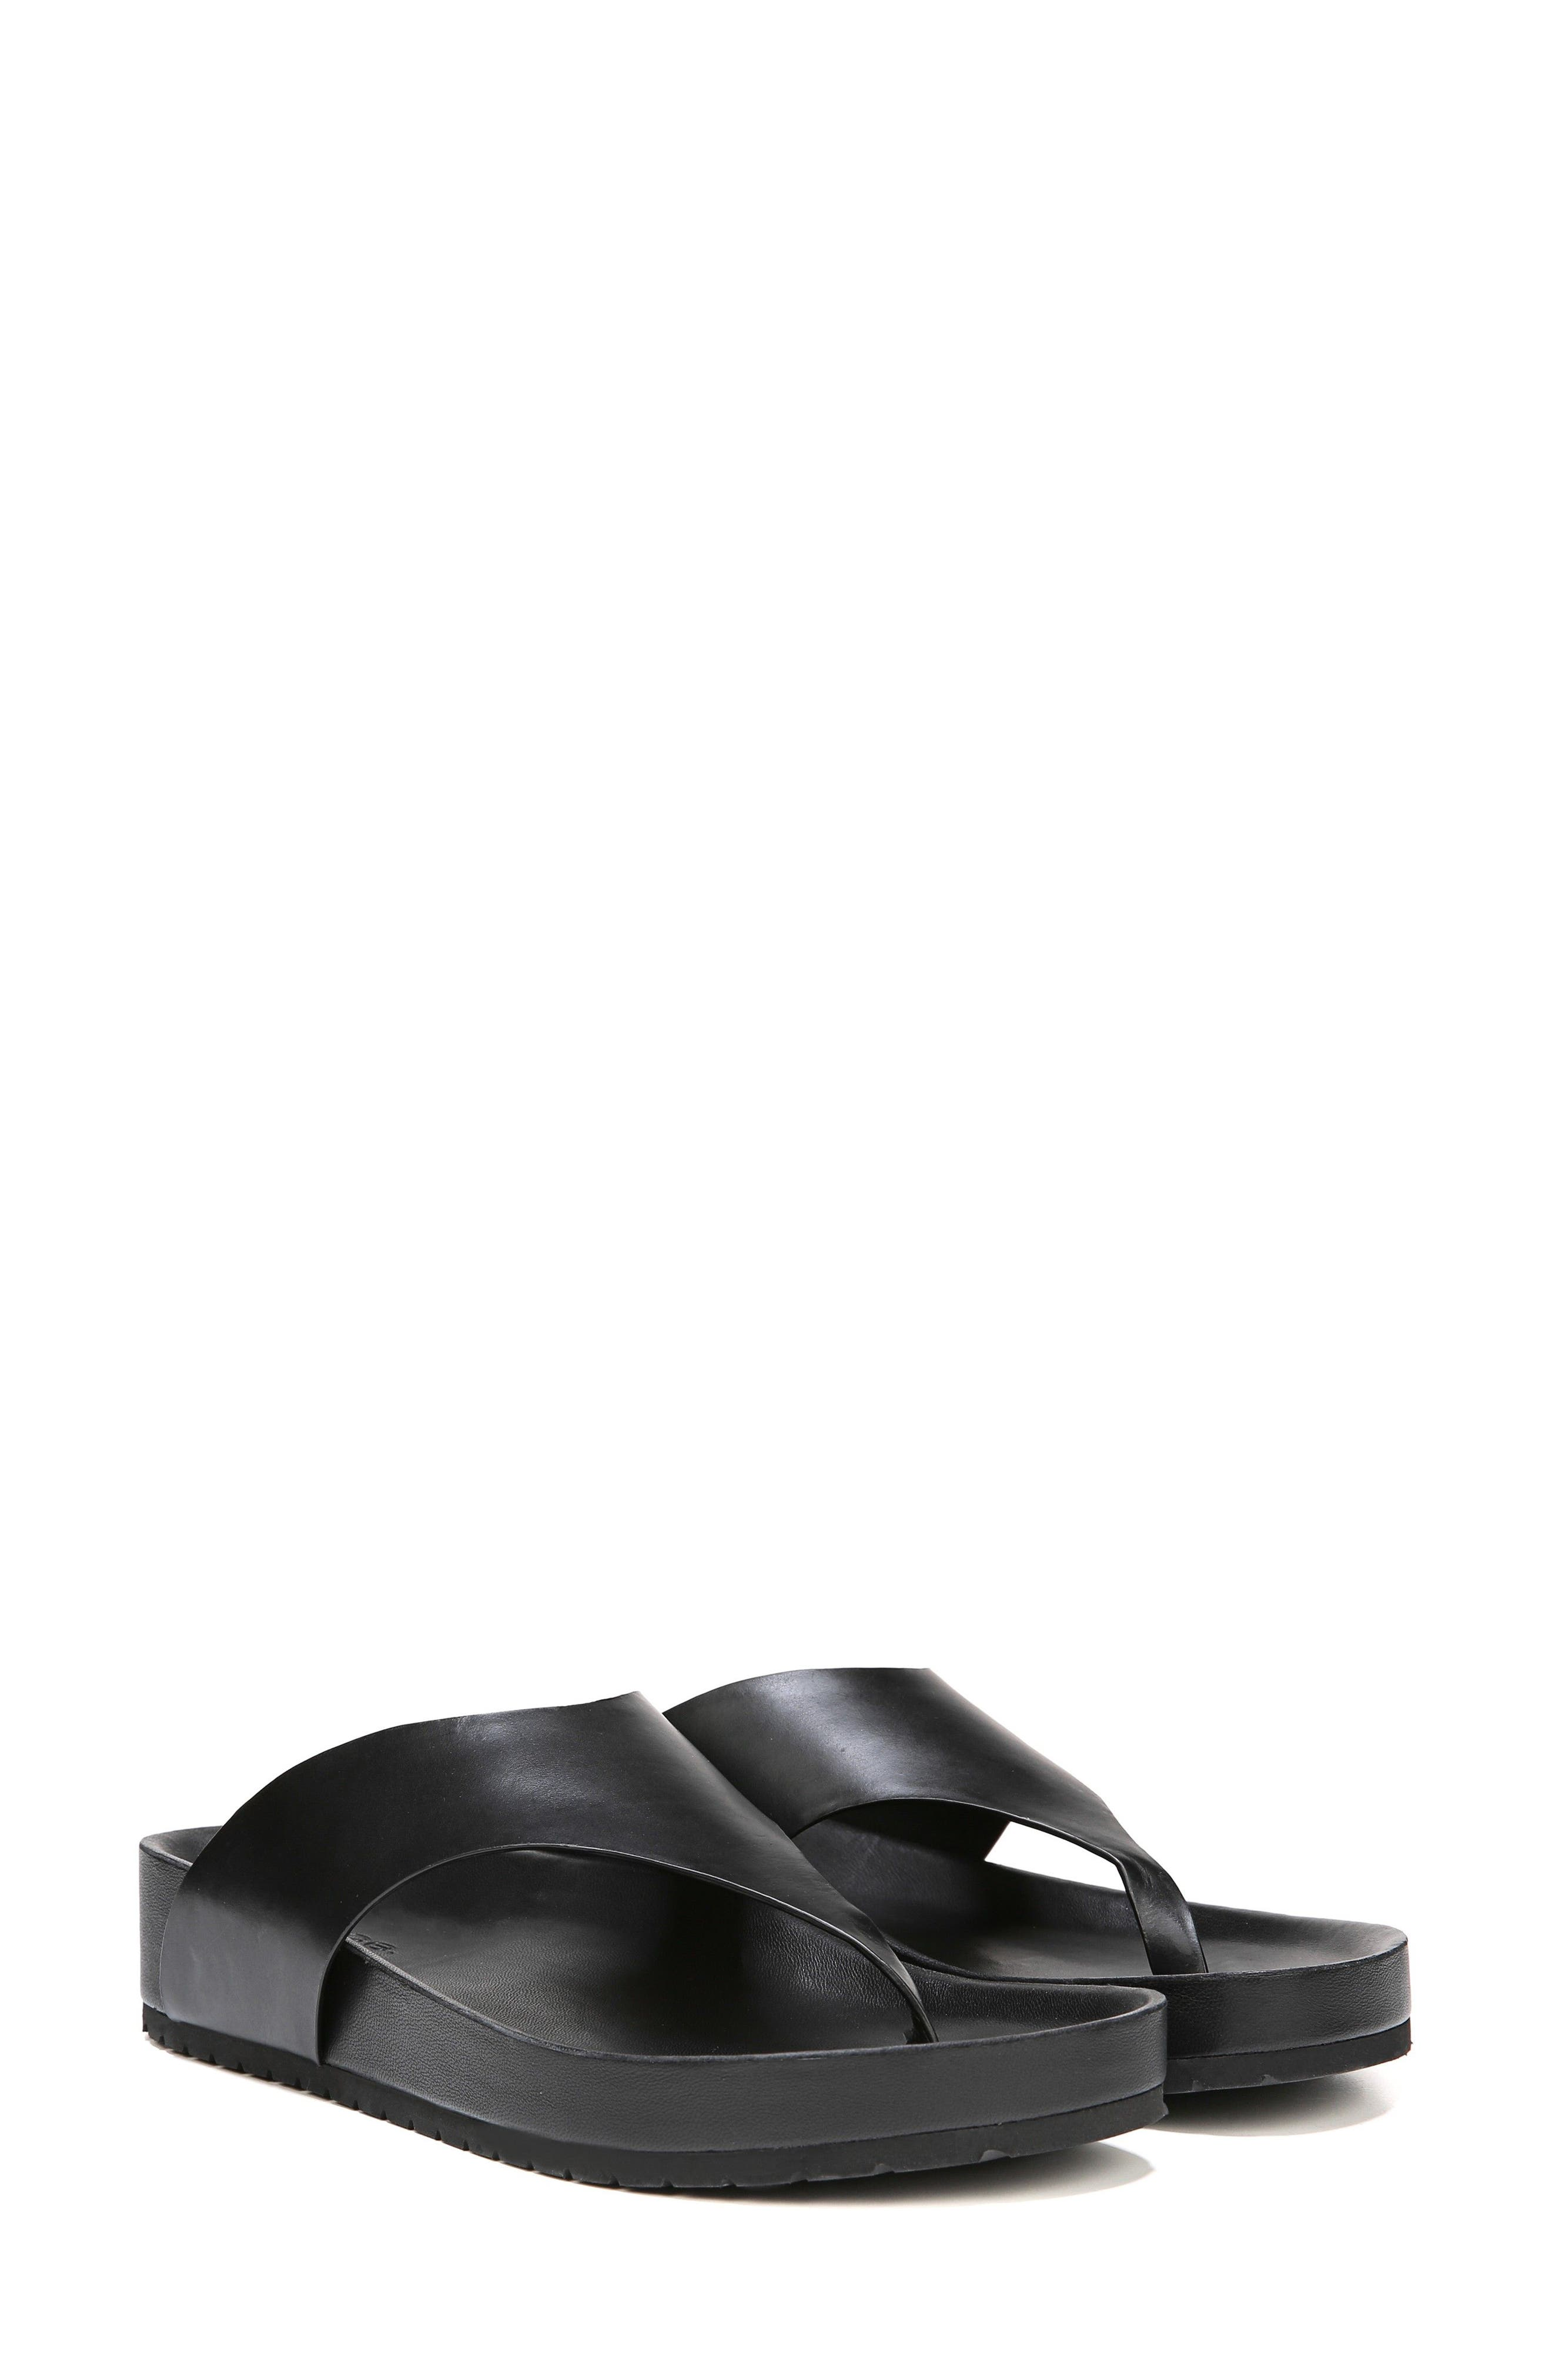 Padma Platform Sandal,                             Alternate thumbnail 6, color,                             BLACK